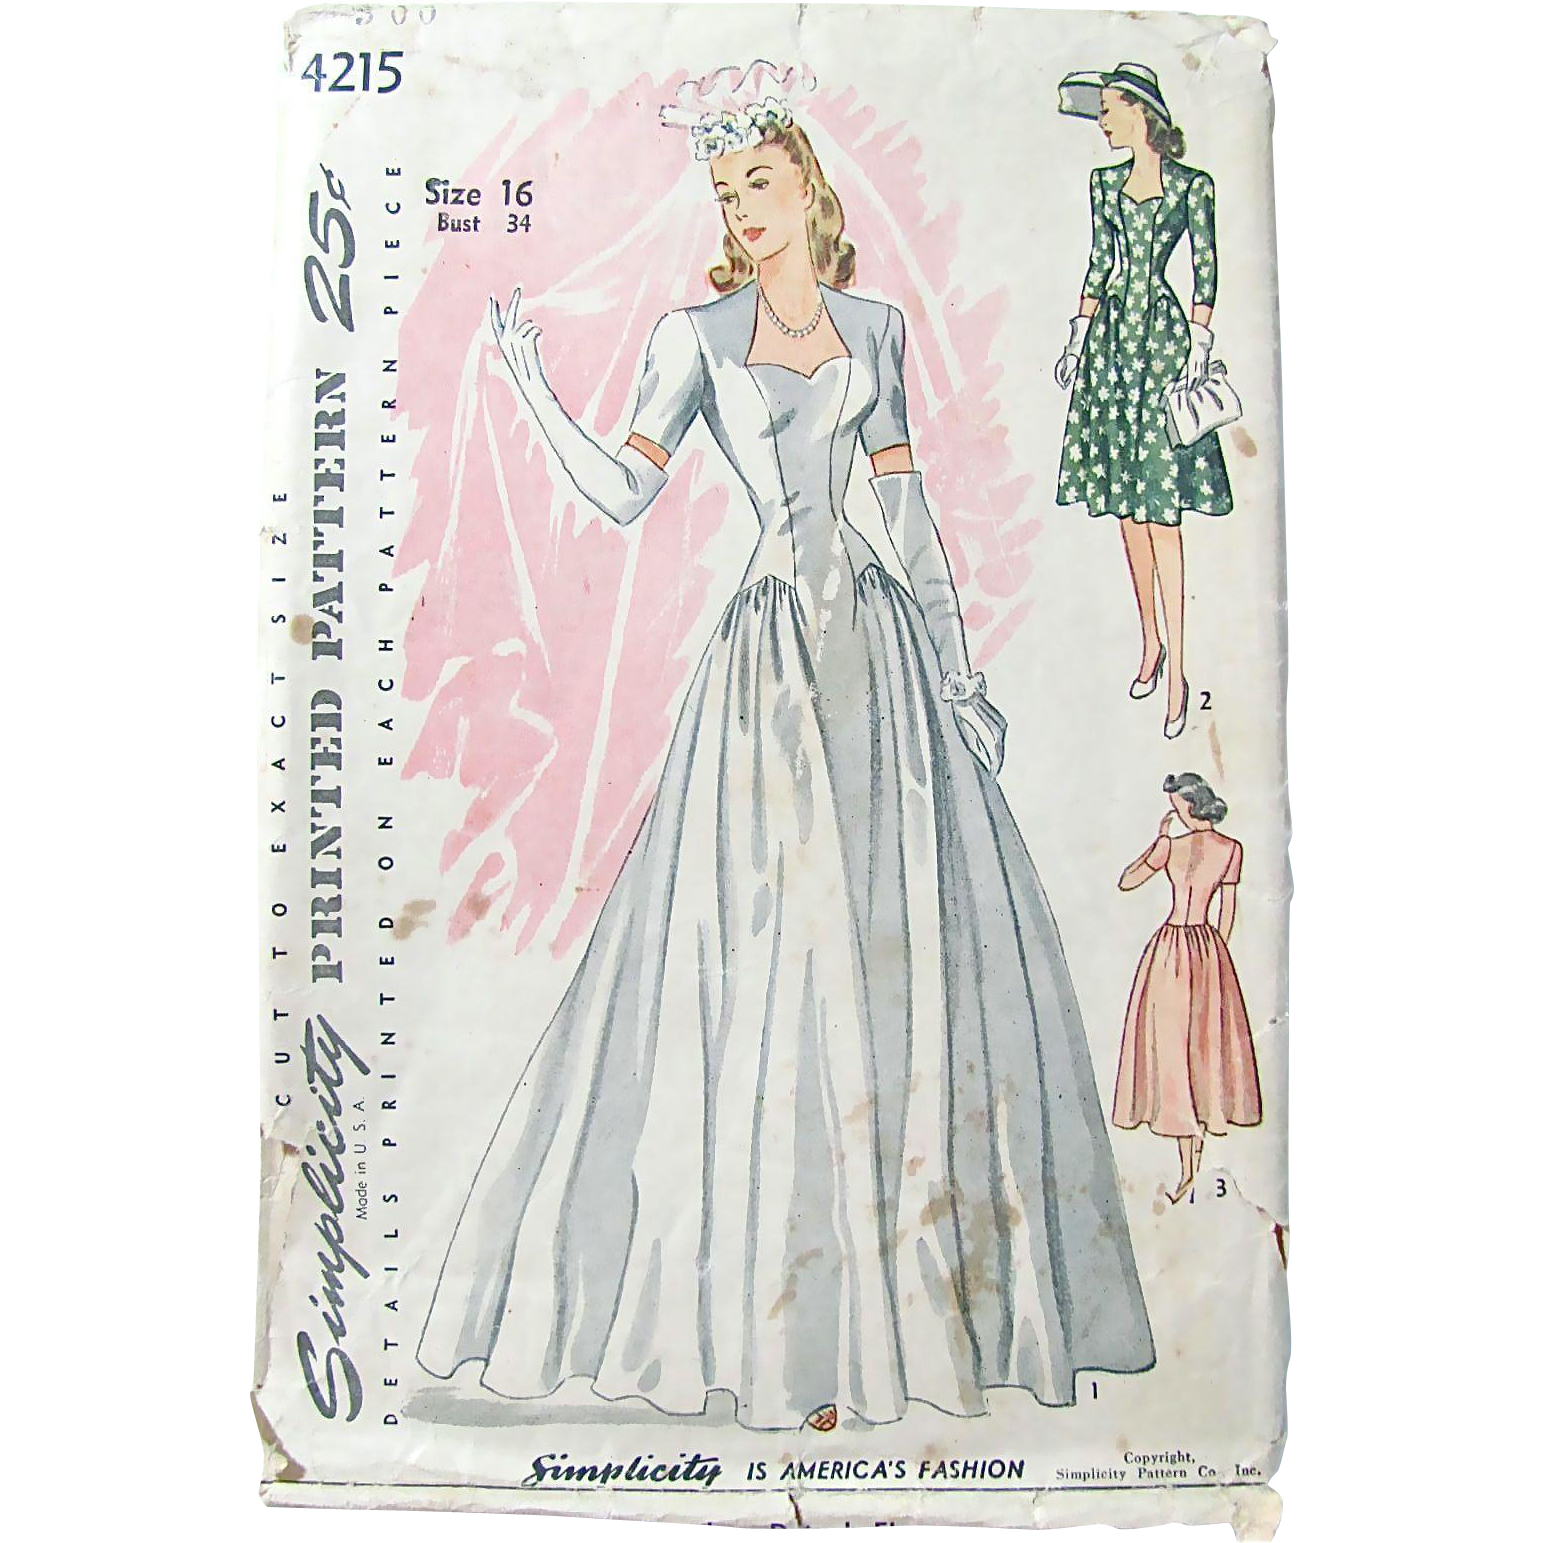 Vintage Wedding Gown Pattern, Simplicity 4215, Circa 1940s, Size 16, Bust 34, Misses' Dress Complete